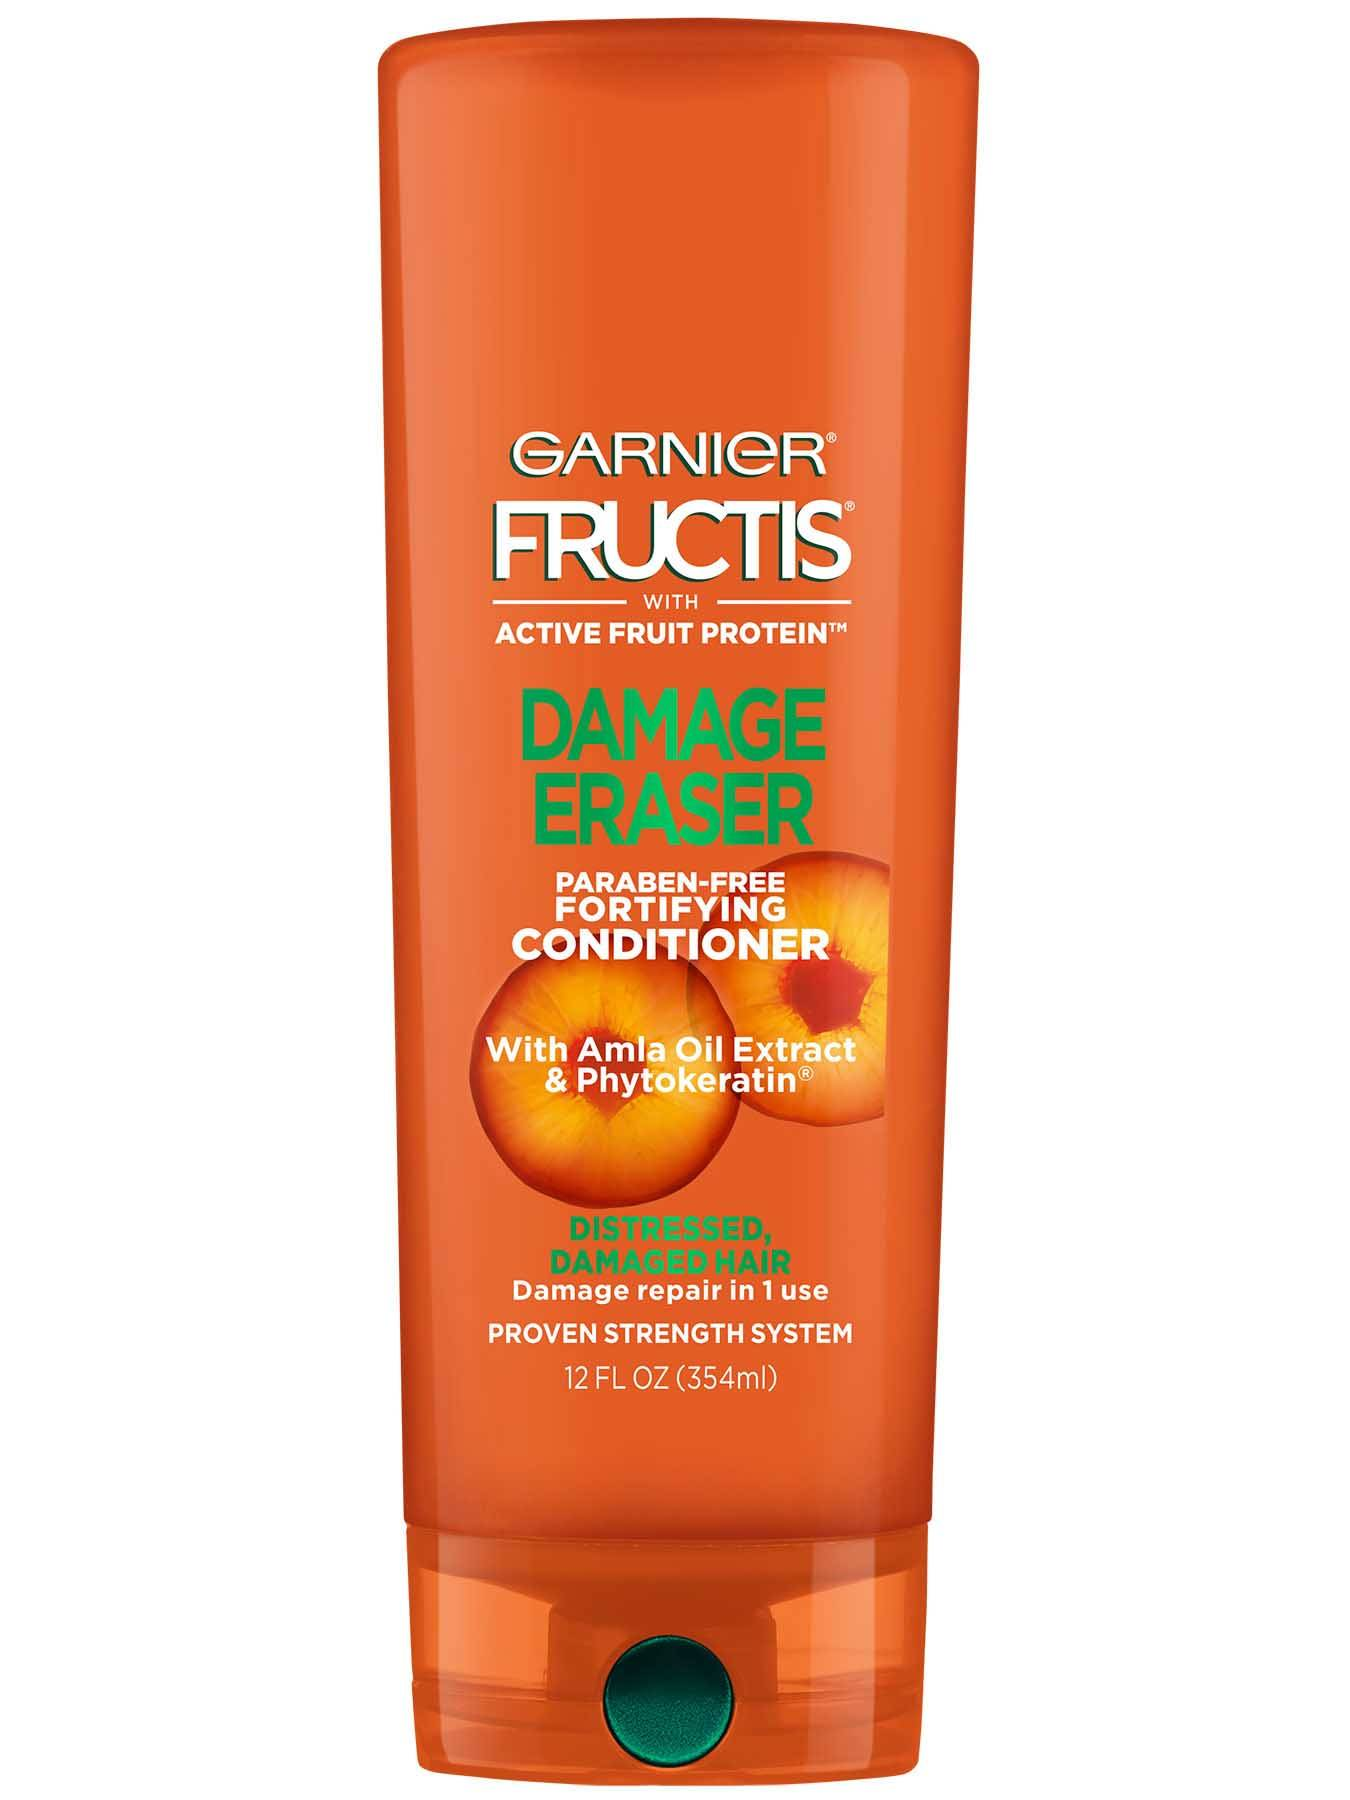 Garnier Fructis Damage Eraser Conditioner Front Of Bottle